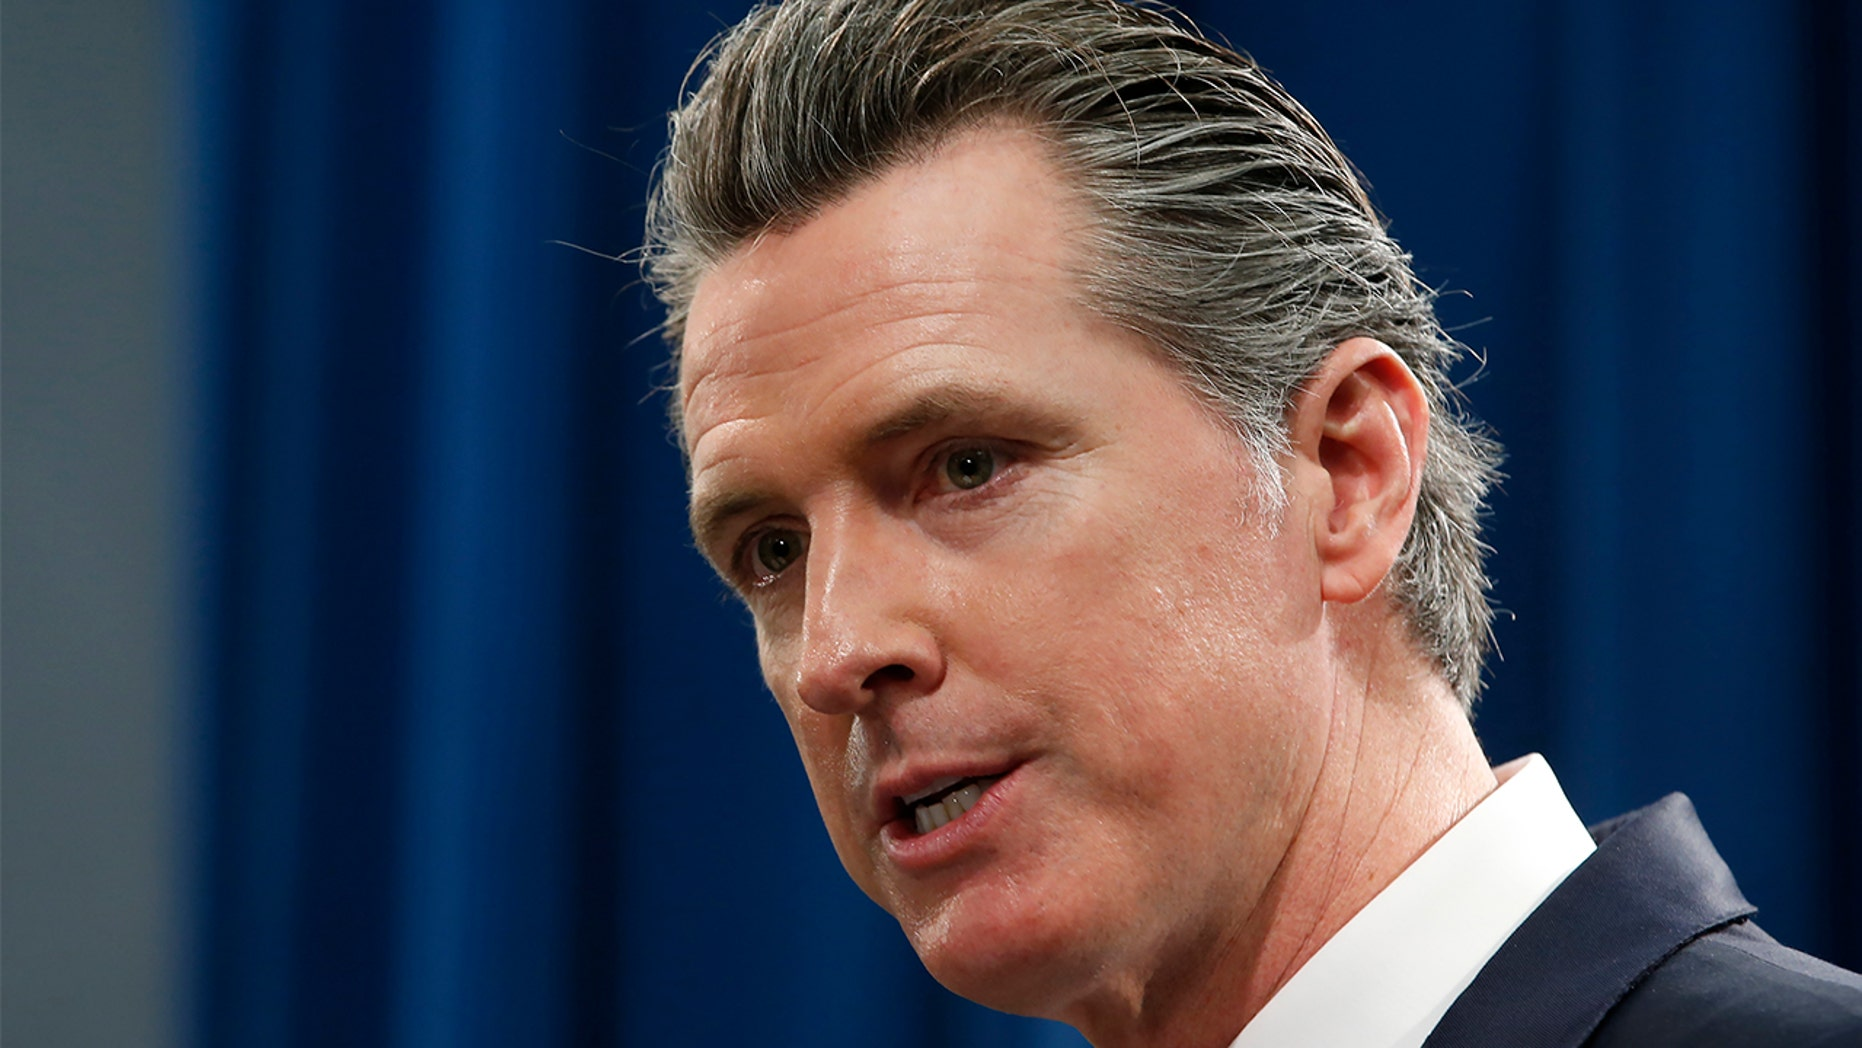 FILE - In this Jan. 10, 2020 file photo California Gov. Gavin Newsom responds to a reporters question during a news conference in Sacramento, Calif. Newsom announced Wednesday, Feb. 5, 2020. (AP Photo/Rich Pedroncelli, File)